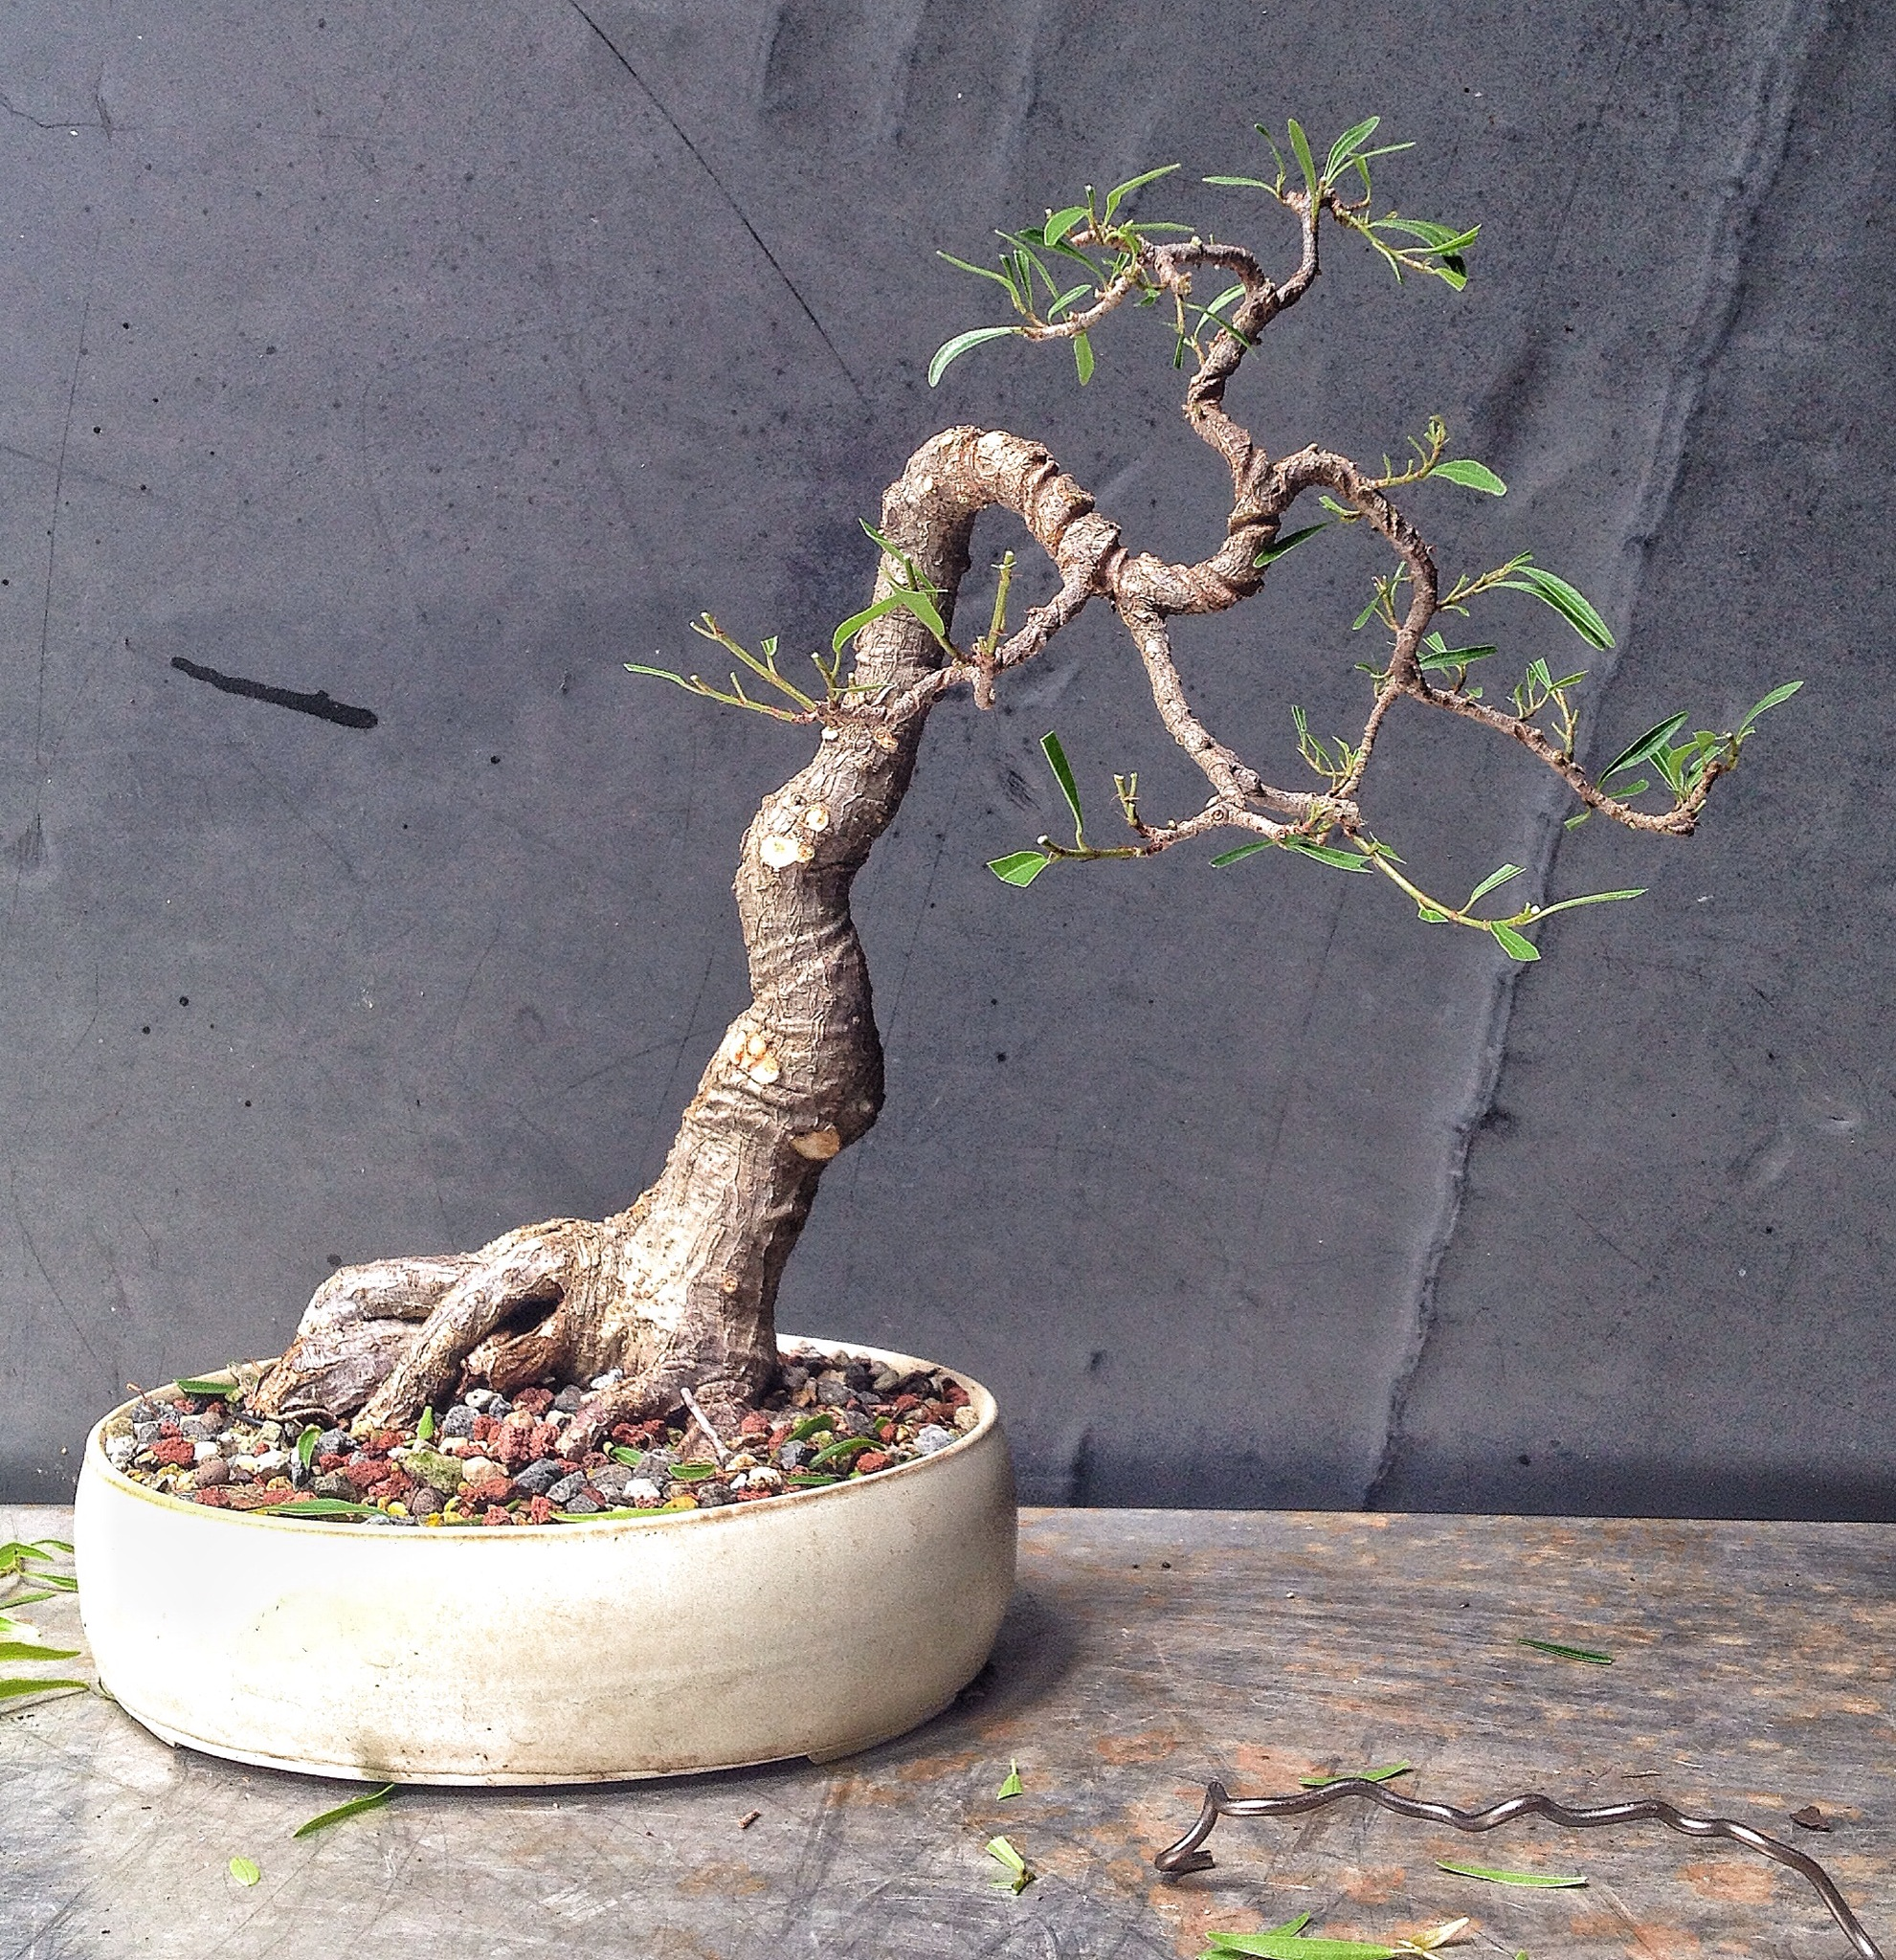 Remarkable Total Willowleaf Ficus Drama Adams Art And Bonsai Blog Wiring Digital Resources Timewpwclawcorpcom